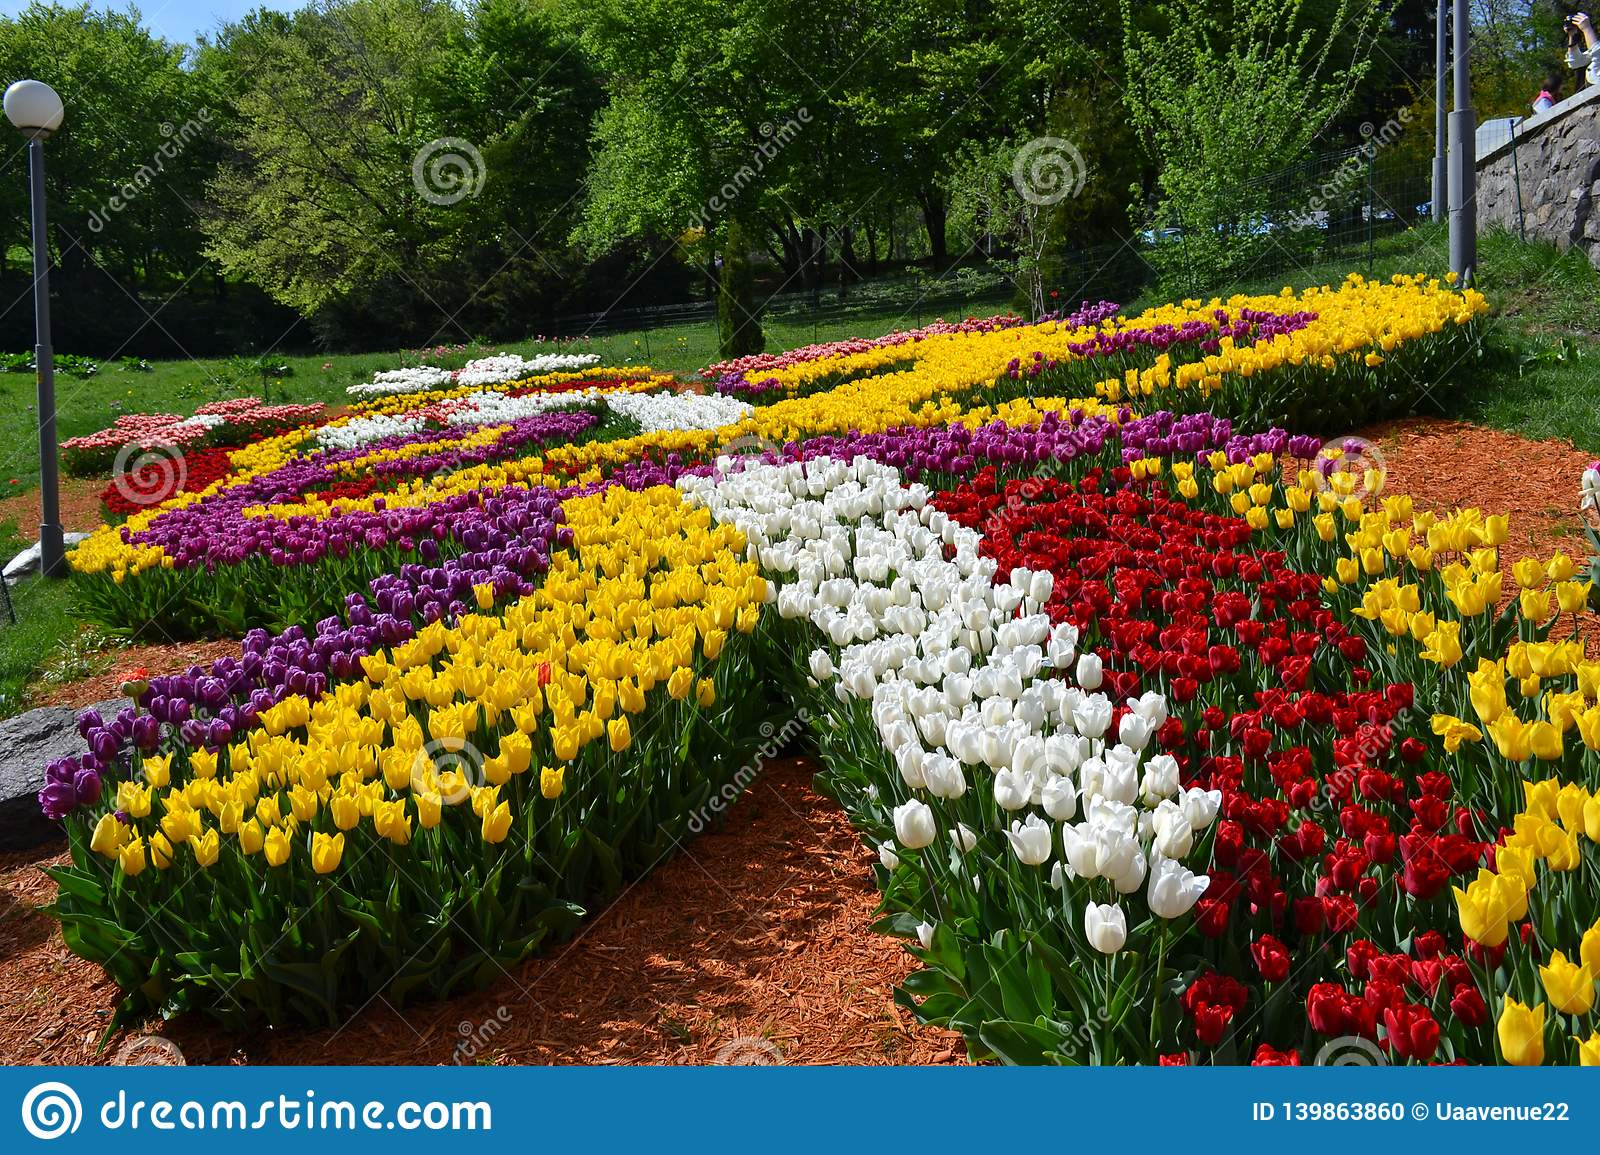 Big plantation of red tulips on sunny day in spring. Manufacture of growing flowers. Flower bed in the form of a petals